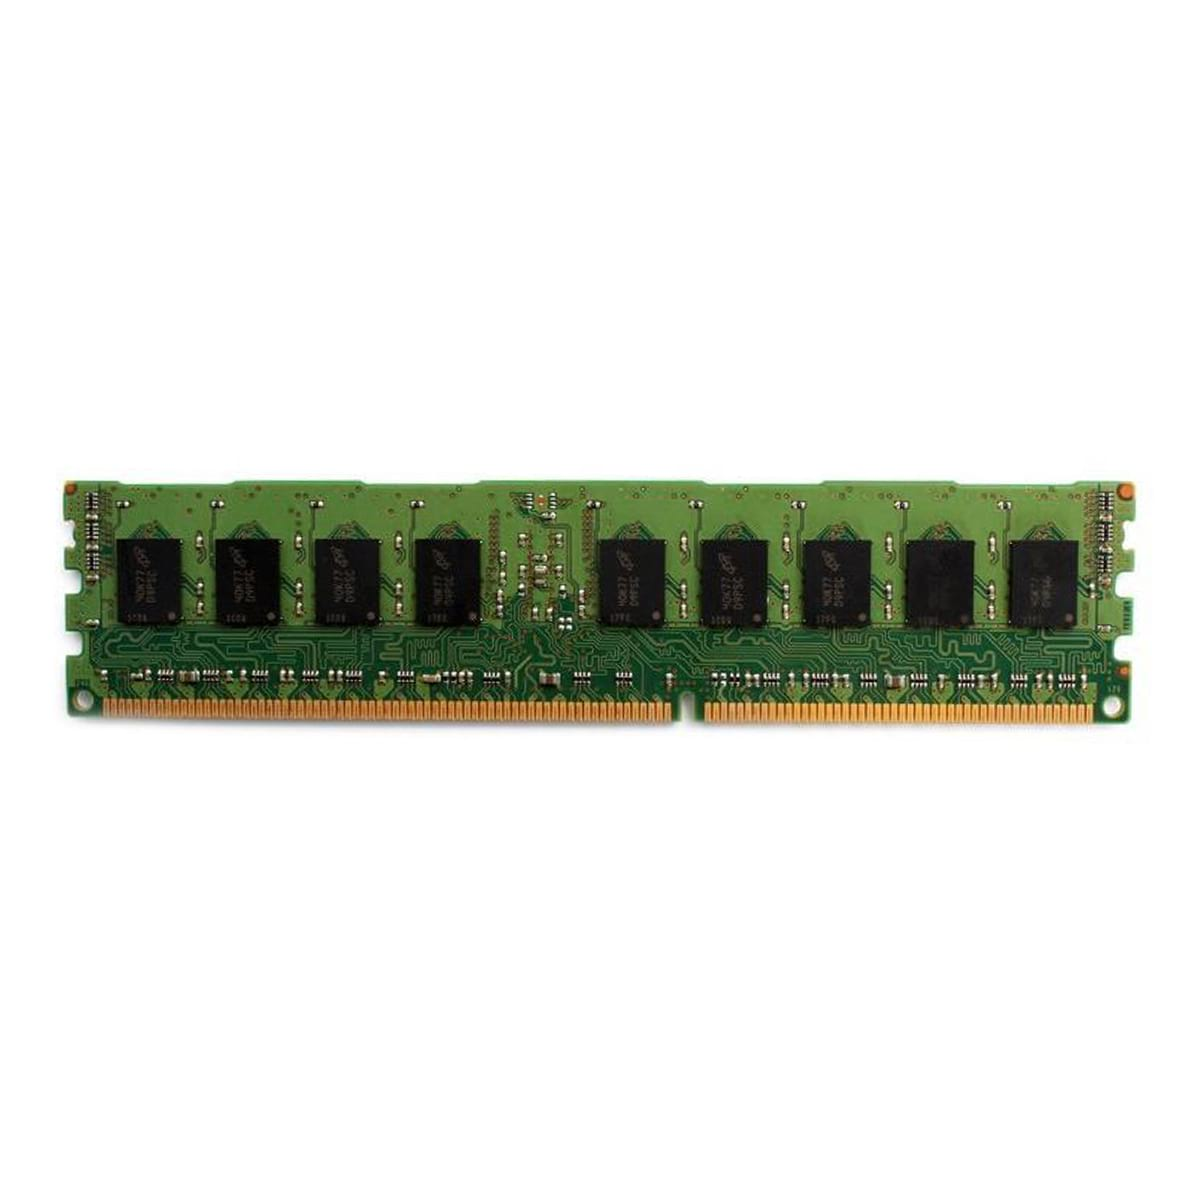 4GB DDR3-1600 PC3-12800 ECC Unbuffered 240 Pin 1.5V CL=11 Memory